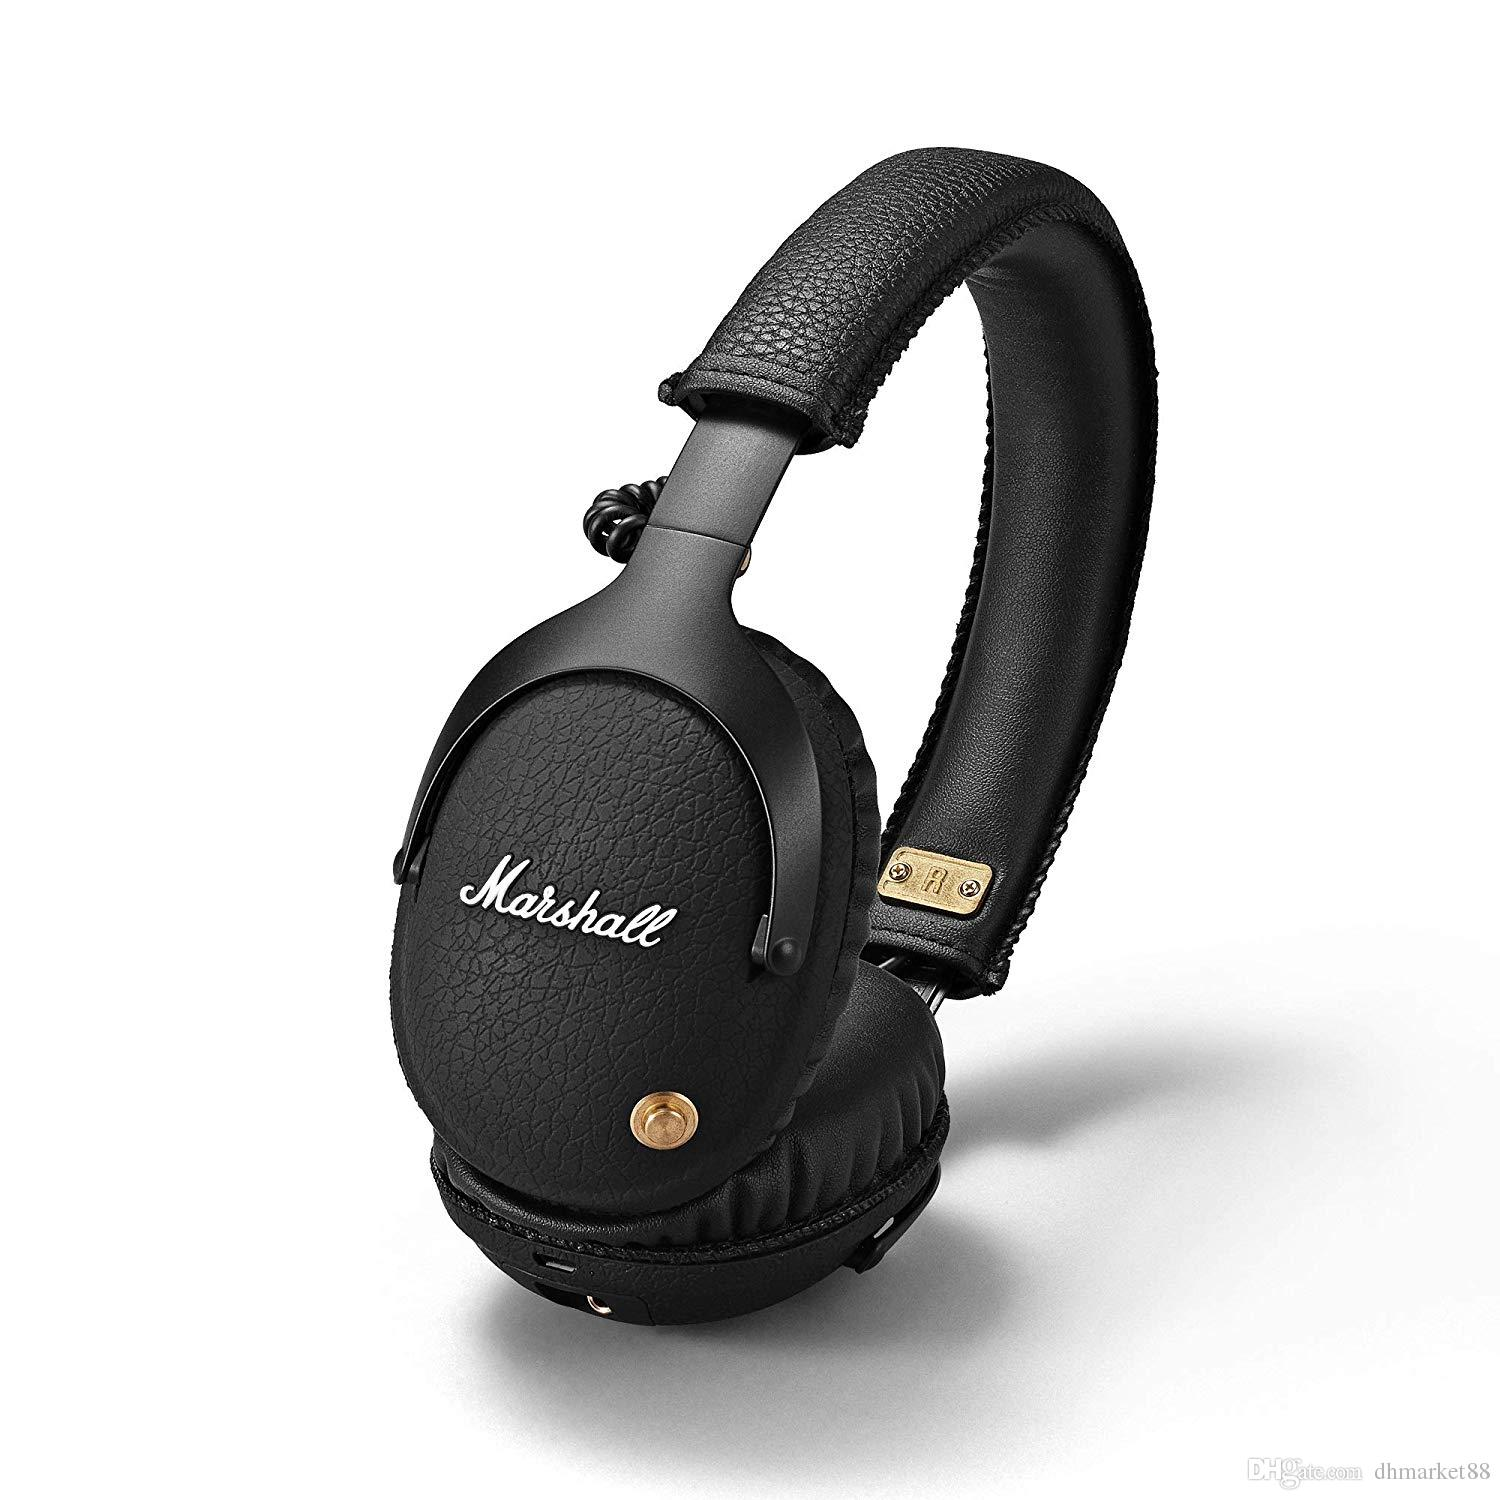 Marshall Monitor Bluetooth Headphones With Mic Deep Bass Dj Hifi Headset Professional Studio Noise Cancelling Headphones Best Bluetooth Earbuds Best Headphones Under 100 From Dhmarket88 57 09 Dhgate Com